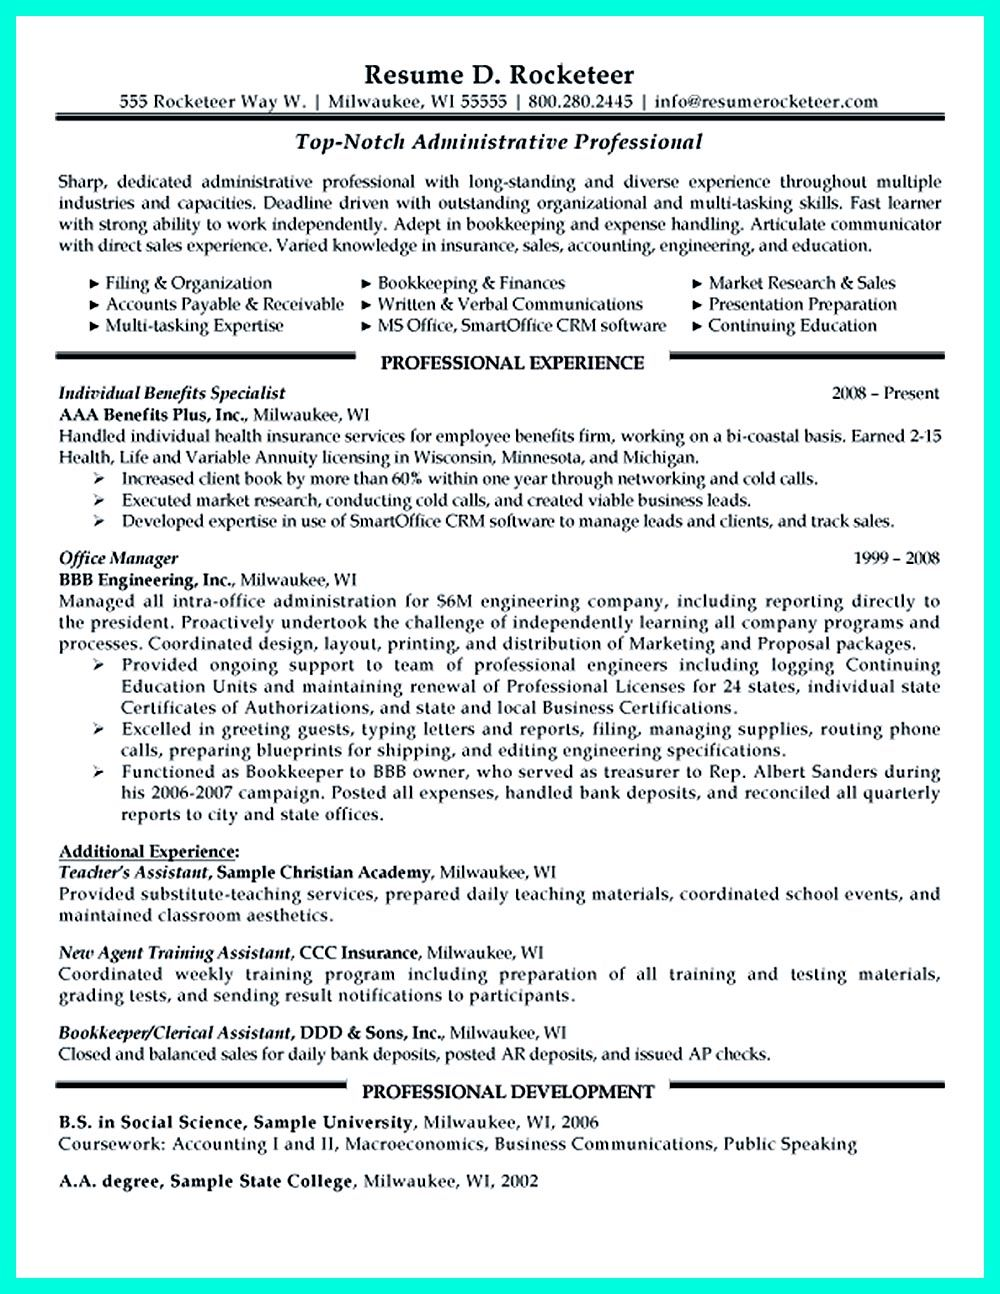 Clerical Resume Sample provides your chronological order of clerical ...